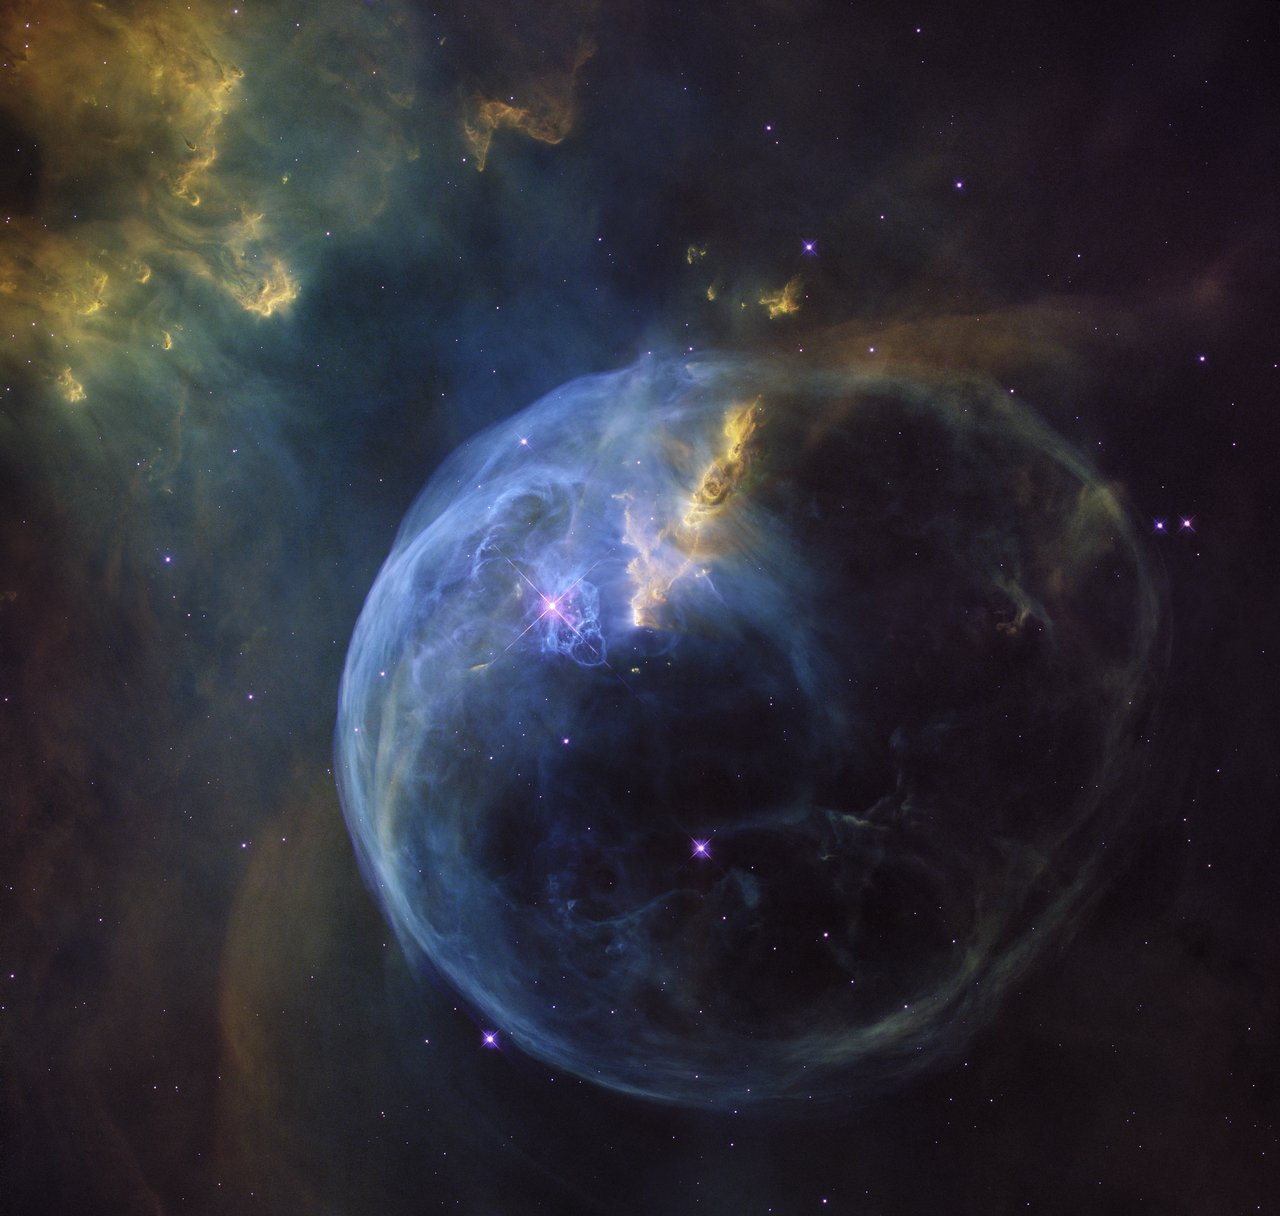 The Bubble Nebula, also known as NGC 7653, is an emission nebula located 8 000 light-years away. This stunning new image was observed by the NASA/ESA Hubble Space Telescope to celebrate its 26th year in space. – Image Credit: NASA, ESA, Hubble Heritage Team